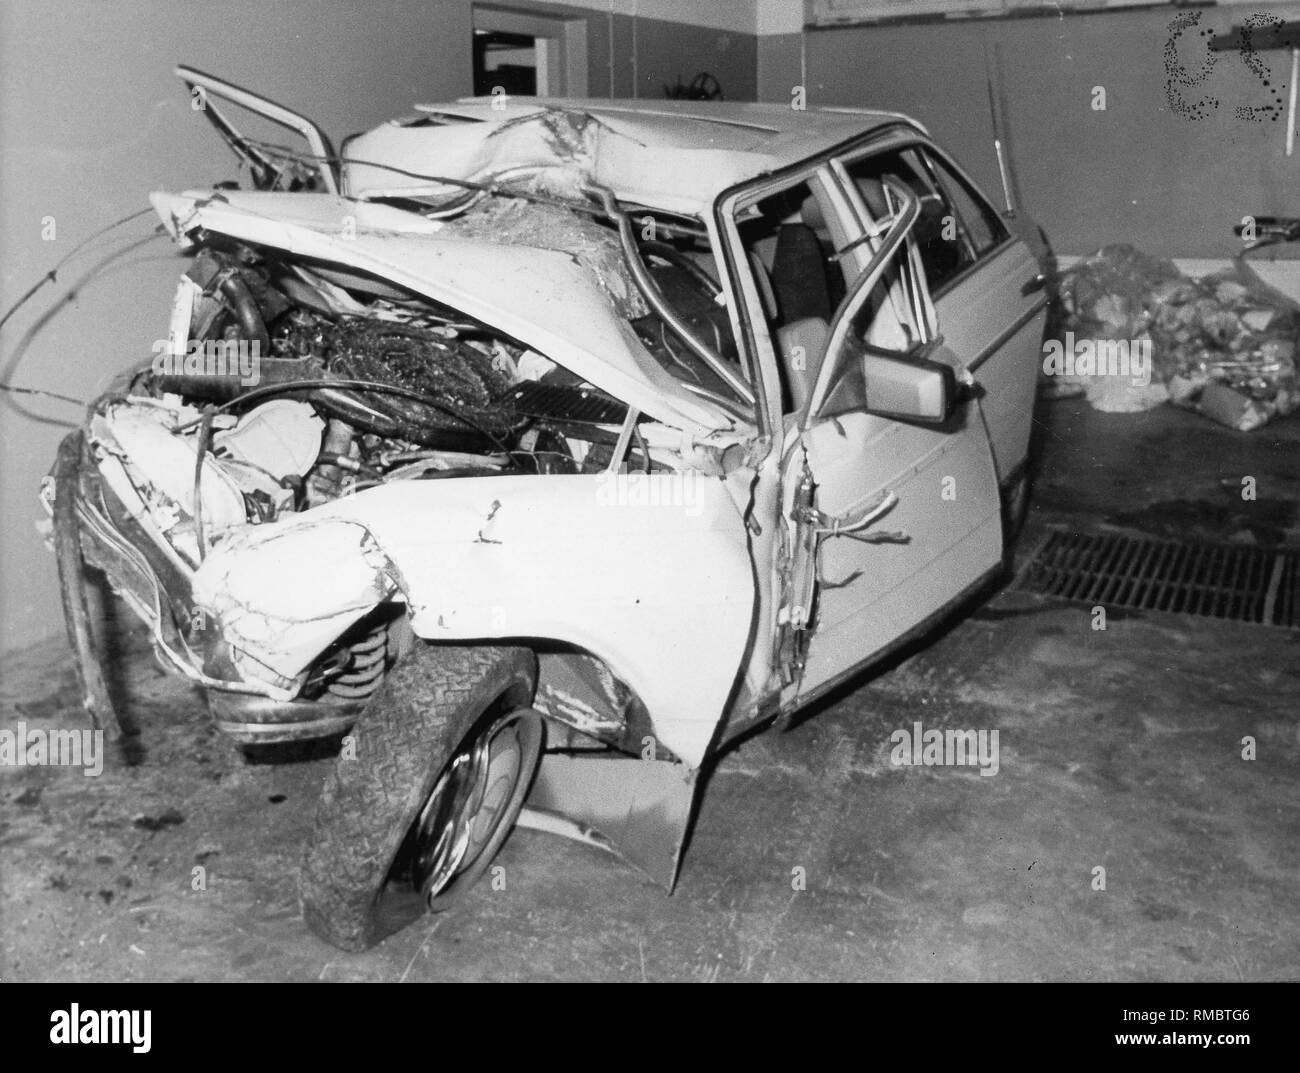 The beige-colored Mercedes 230 E after the deadly car accident of